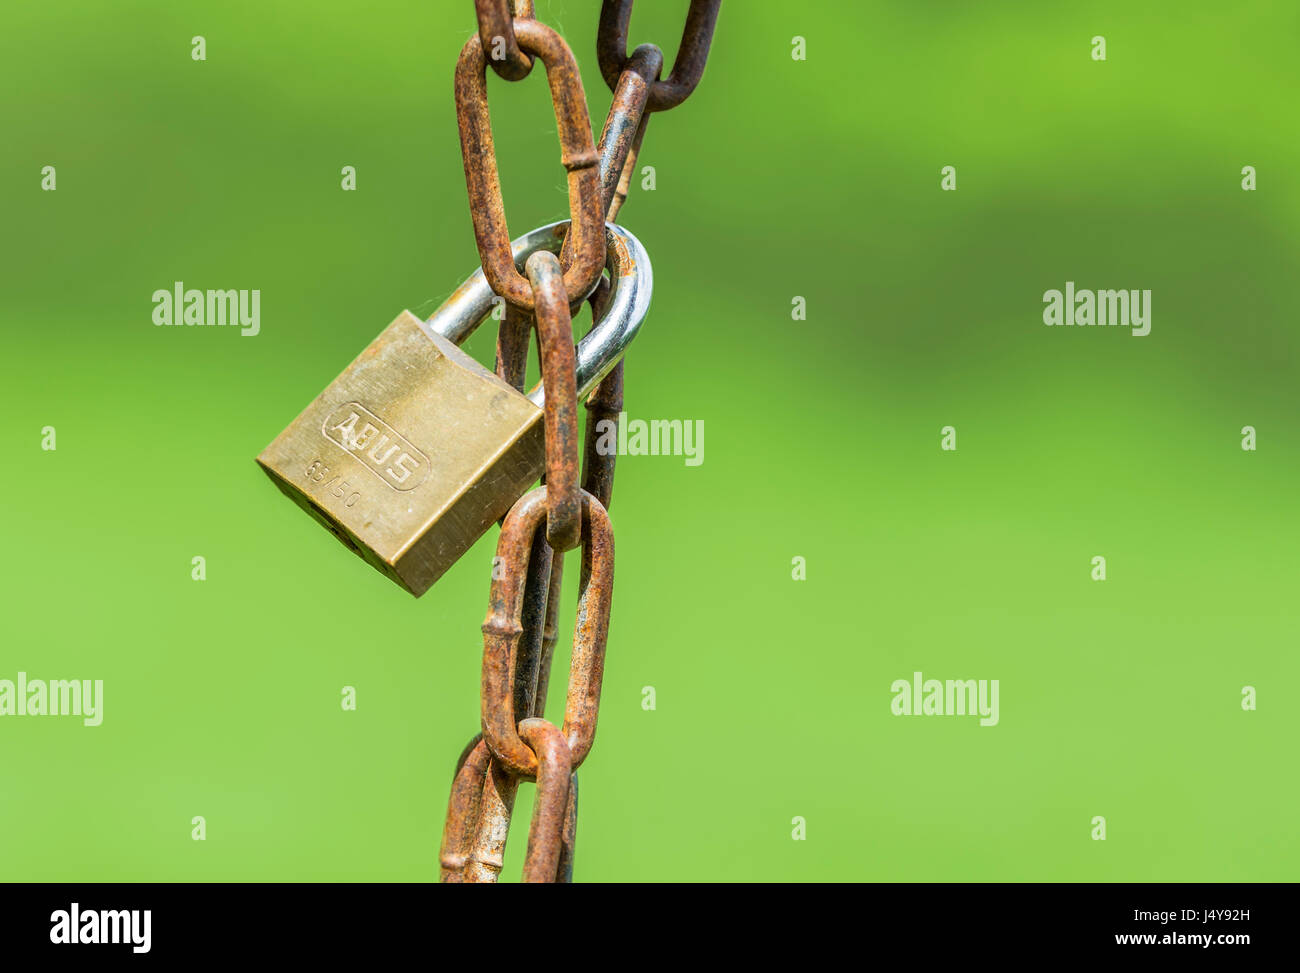 Locked concept. Locked padlock around a rusty chain. Lock hanging from a chain. - Stock Image